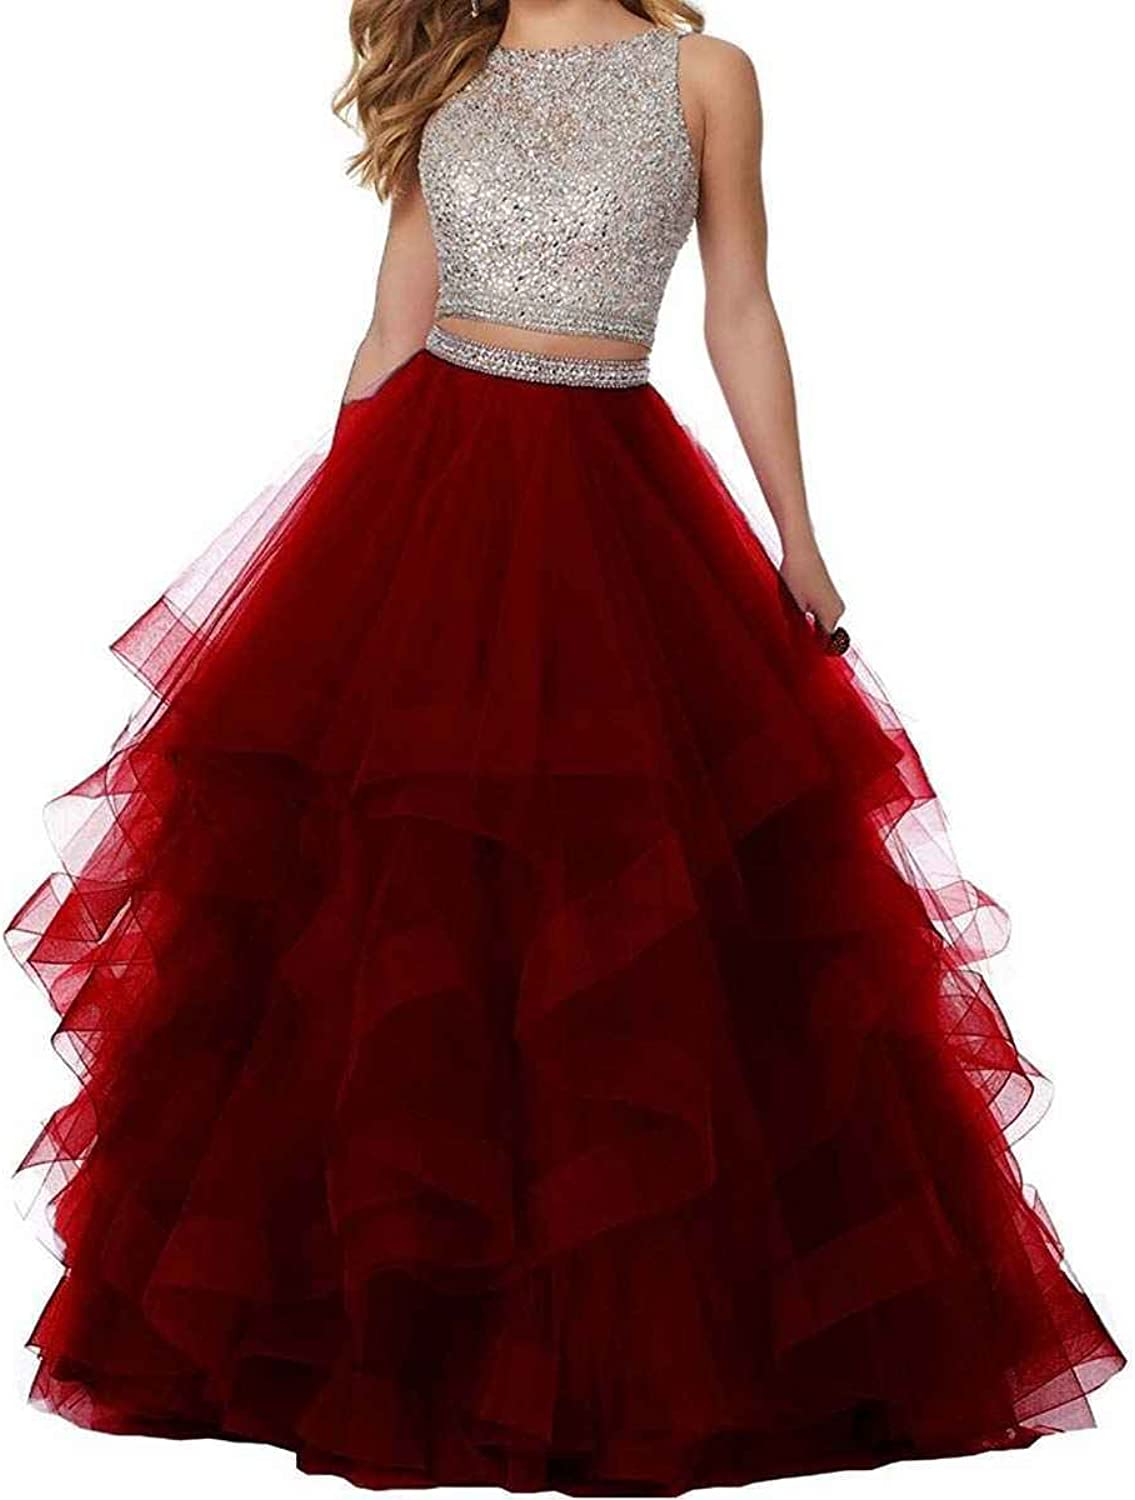 Ruisha Women Sexy Beaded Two Pieces Prom Homecoming Dresses Long Tulle Formal